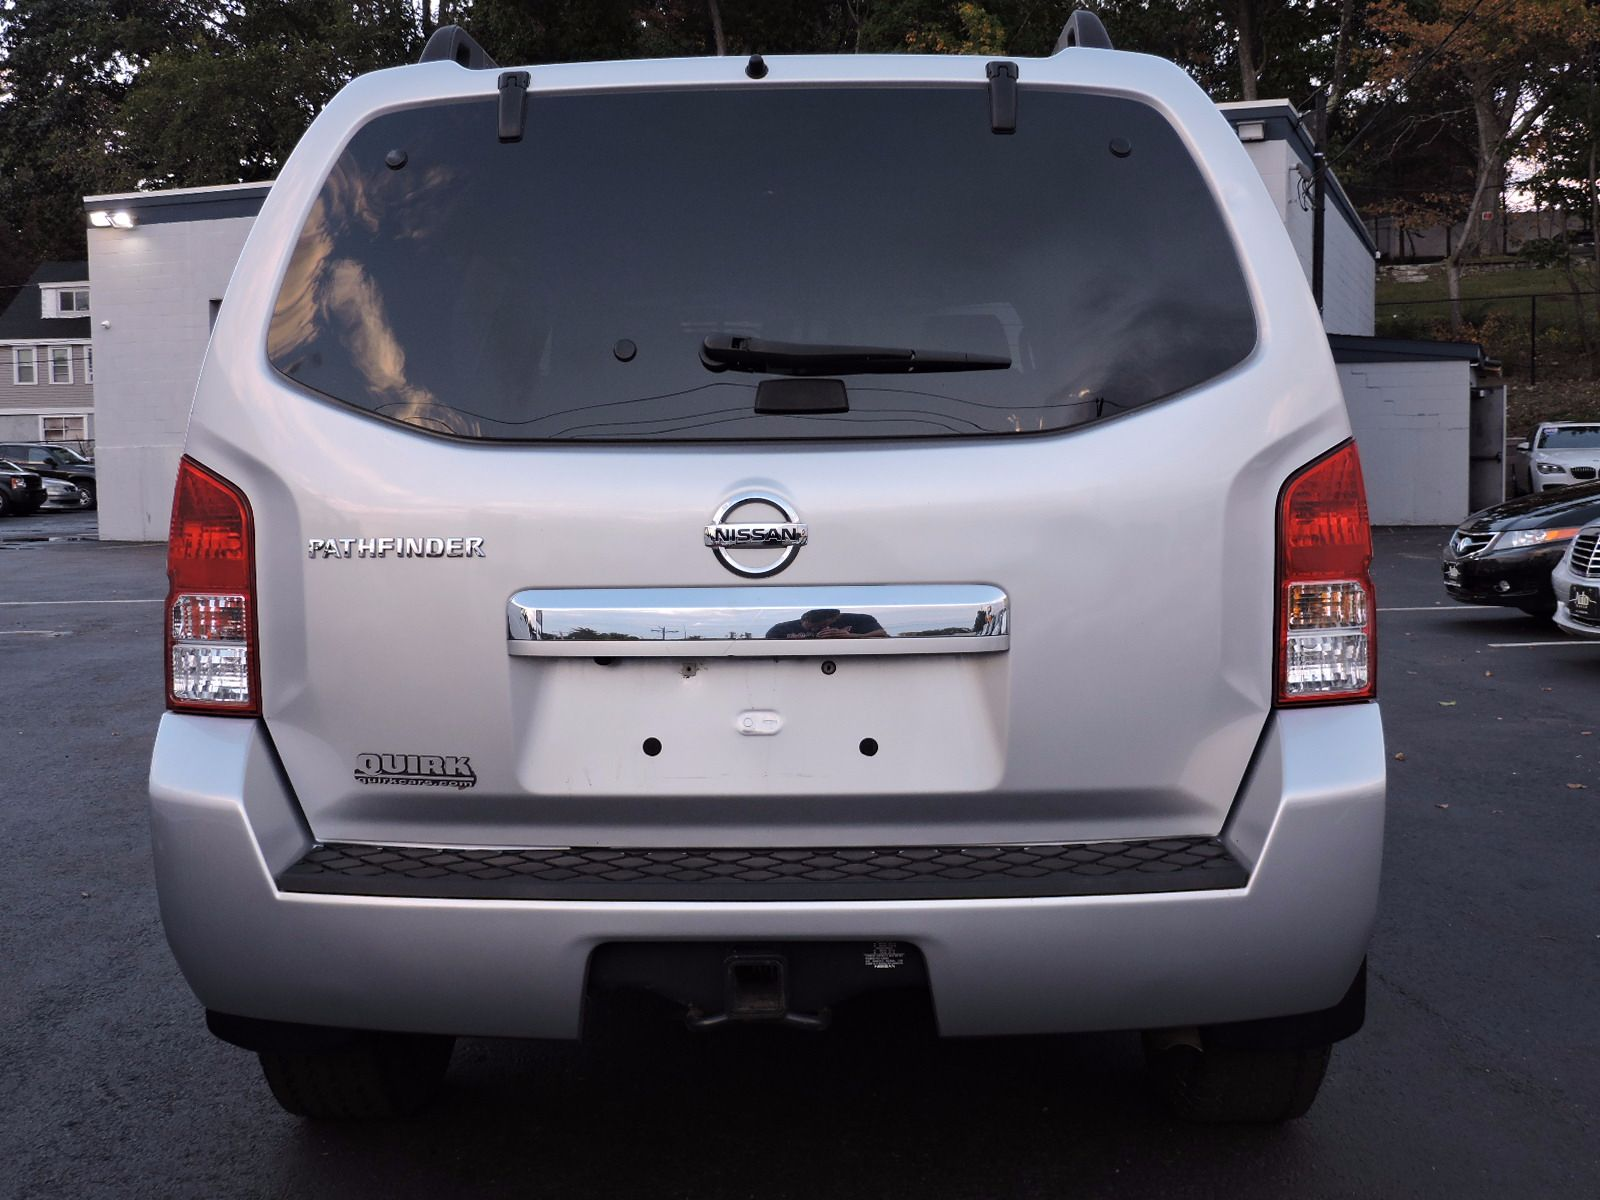 2011 Nissan Pathfinder SV - All Wheel Drive